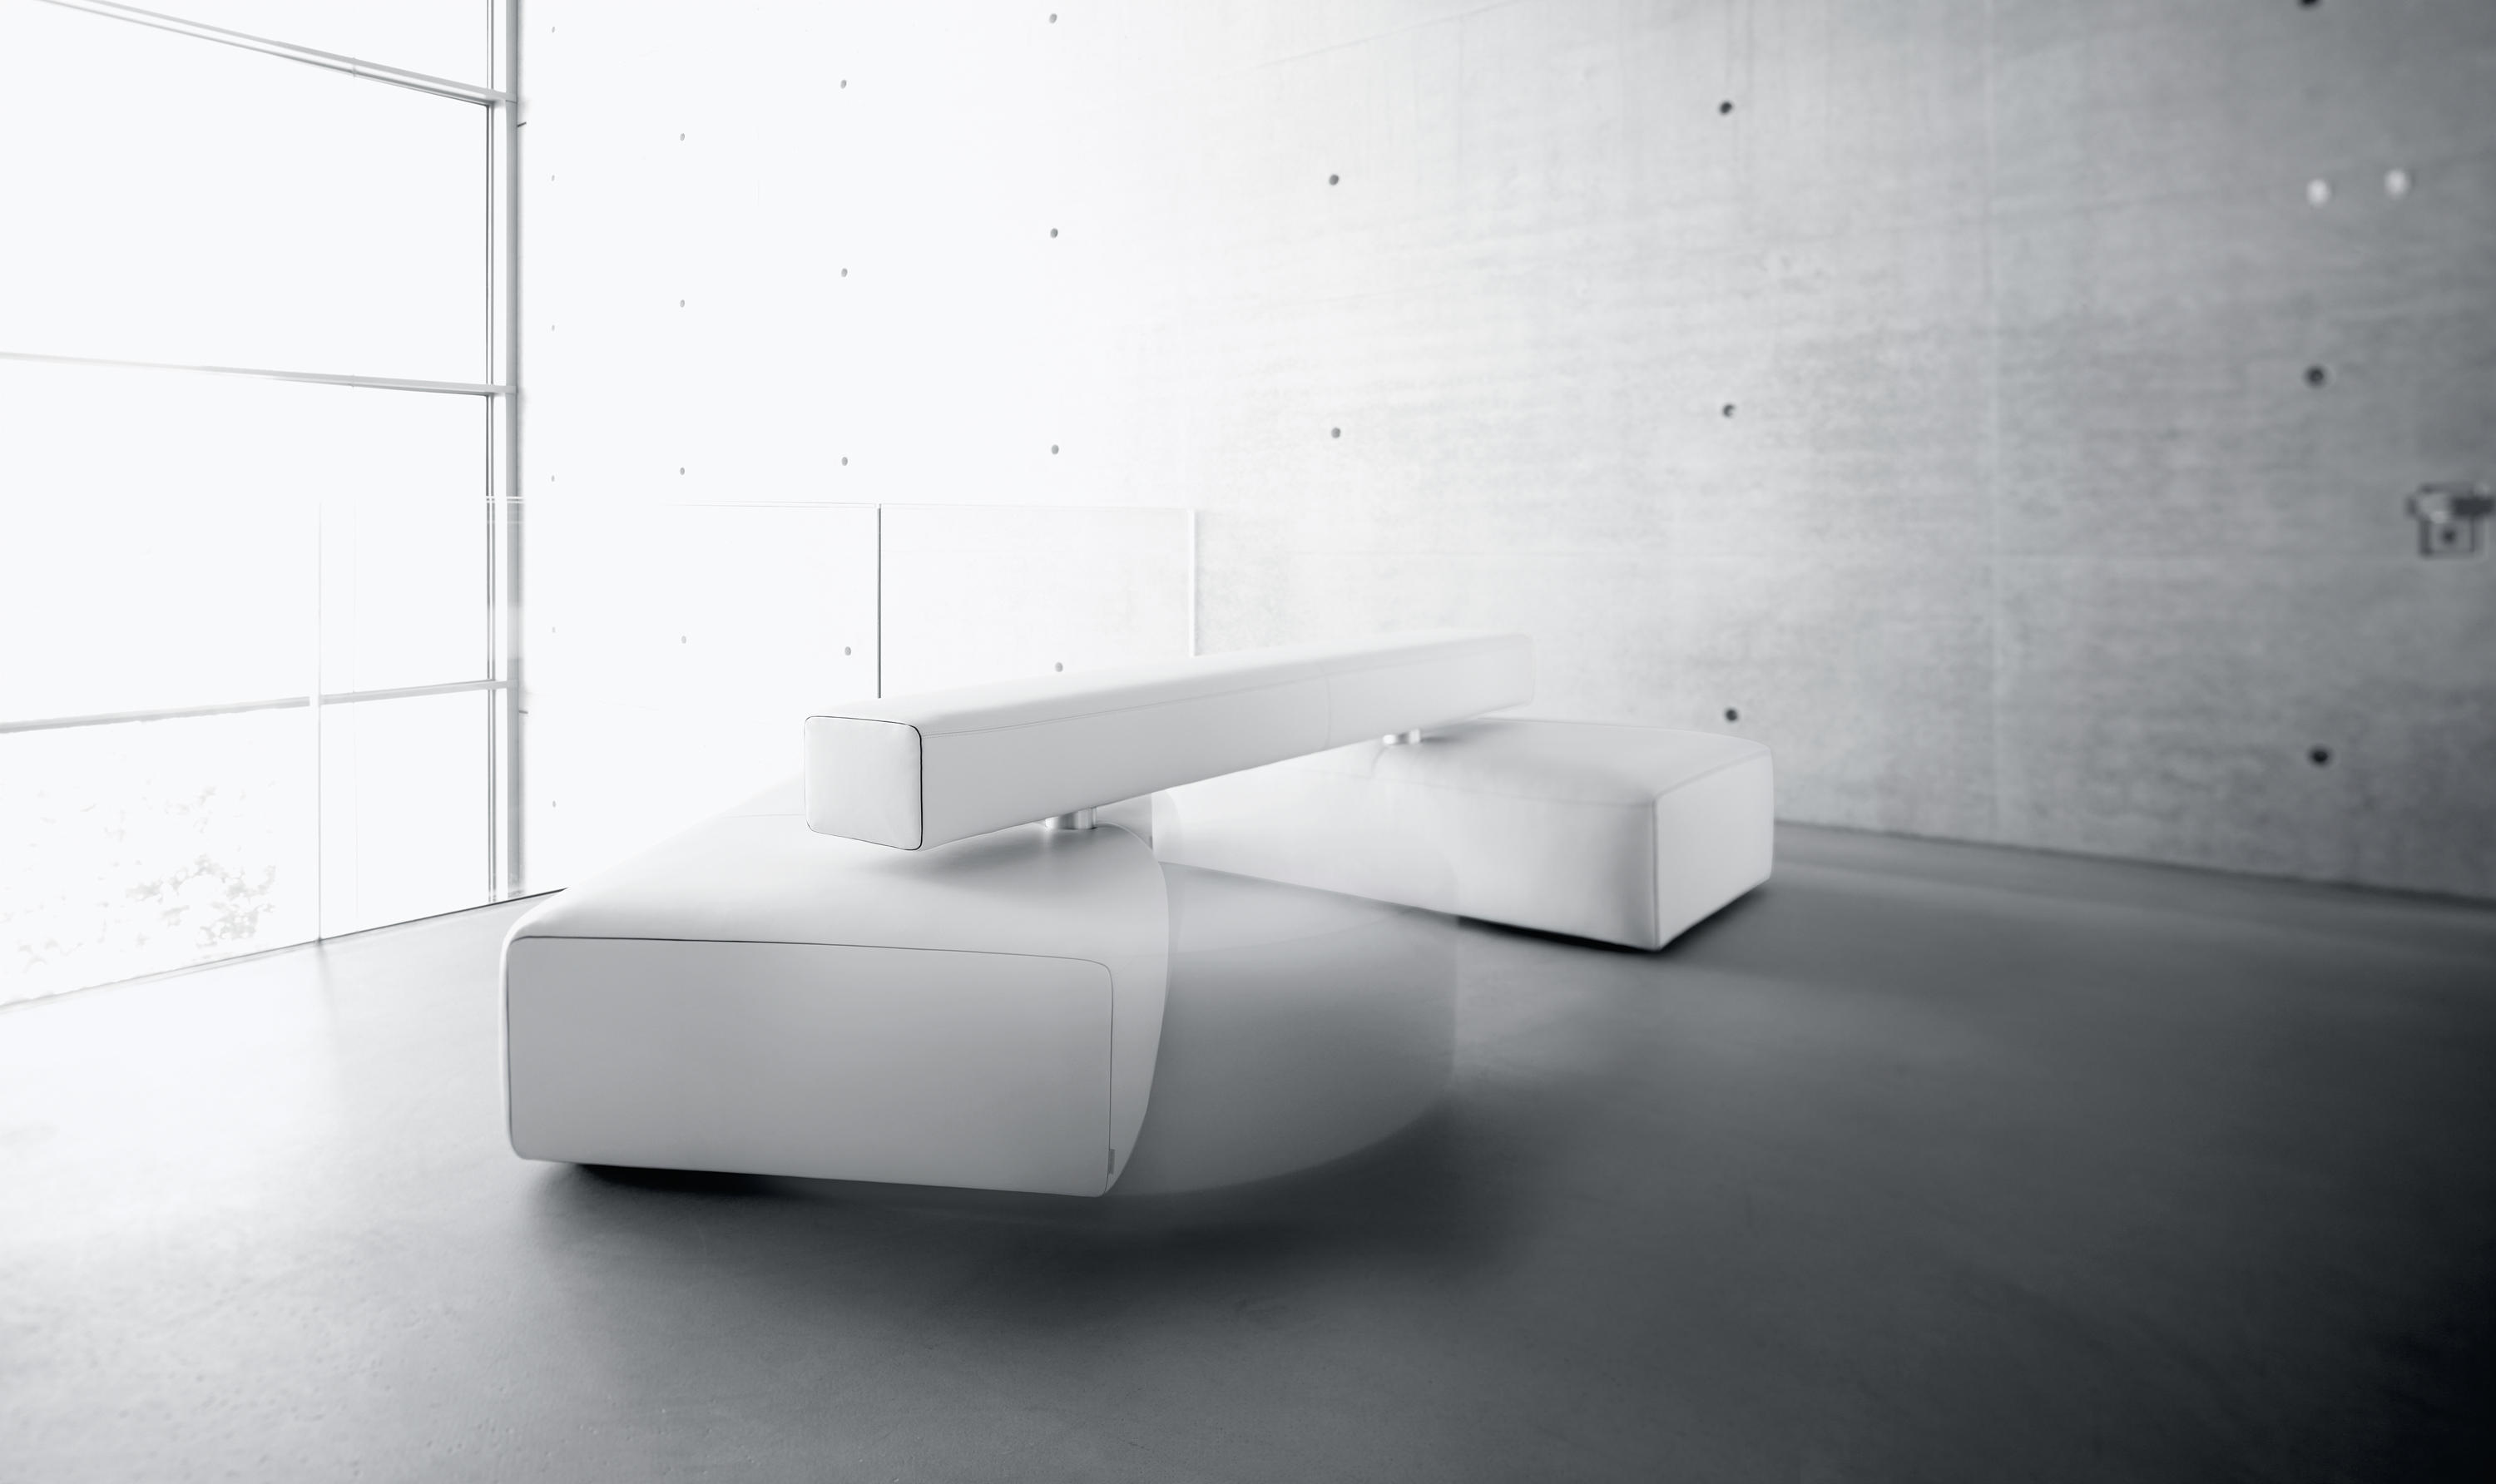 three sixty round sofa lounger do they make slipcovers for reclining sofas threesixty lounge from walter k architonic